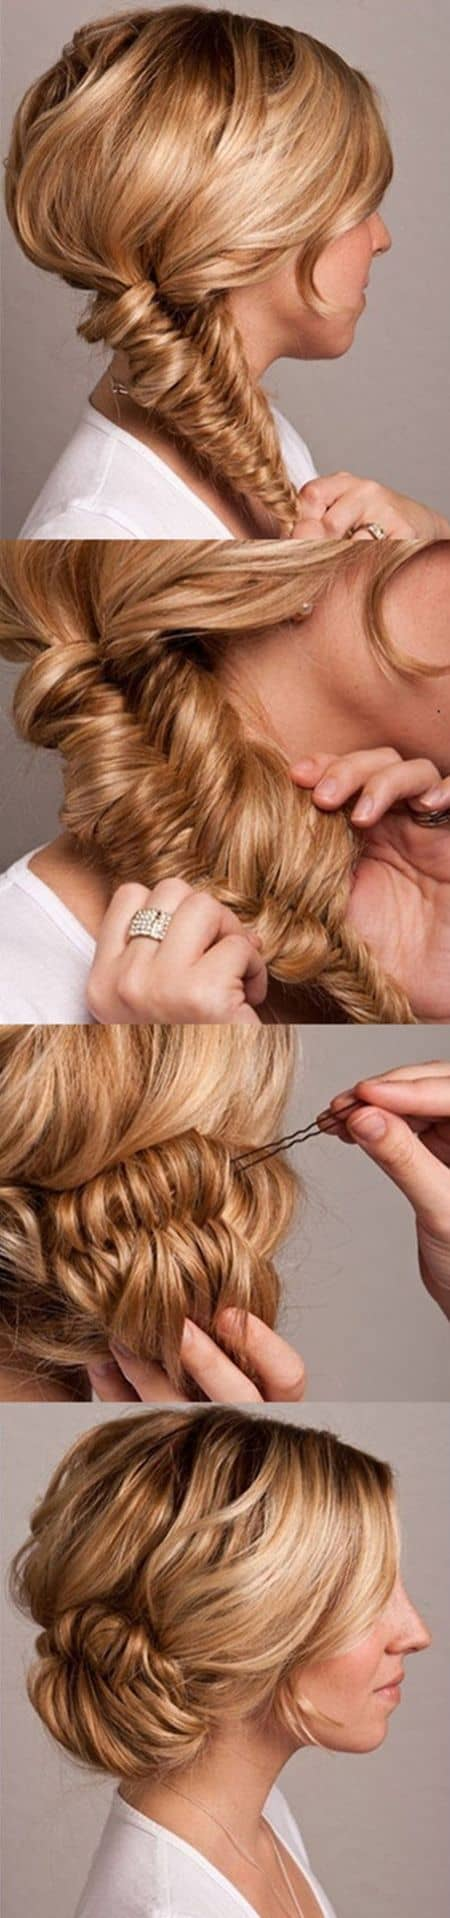 Fishtail wedding bun